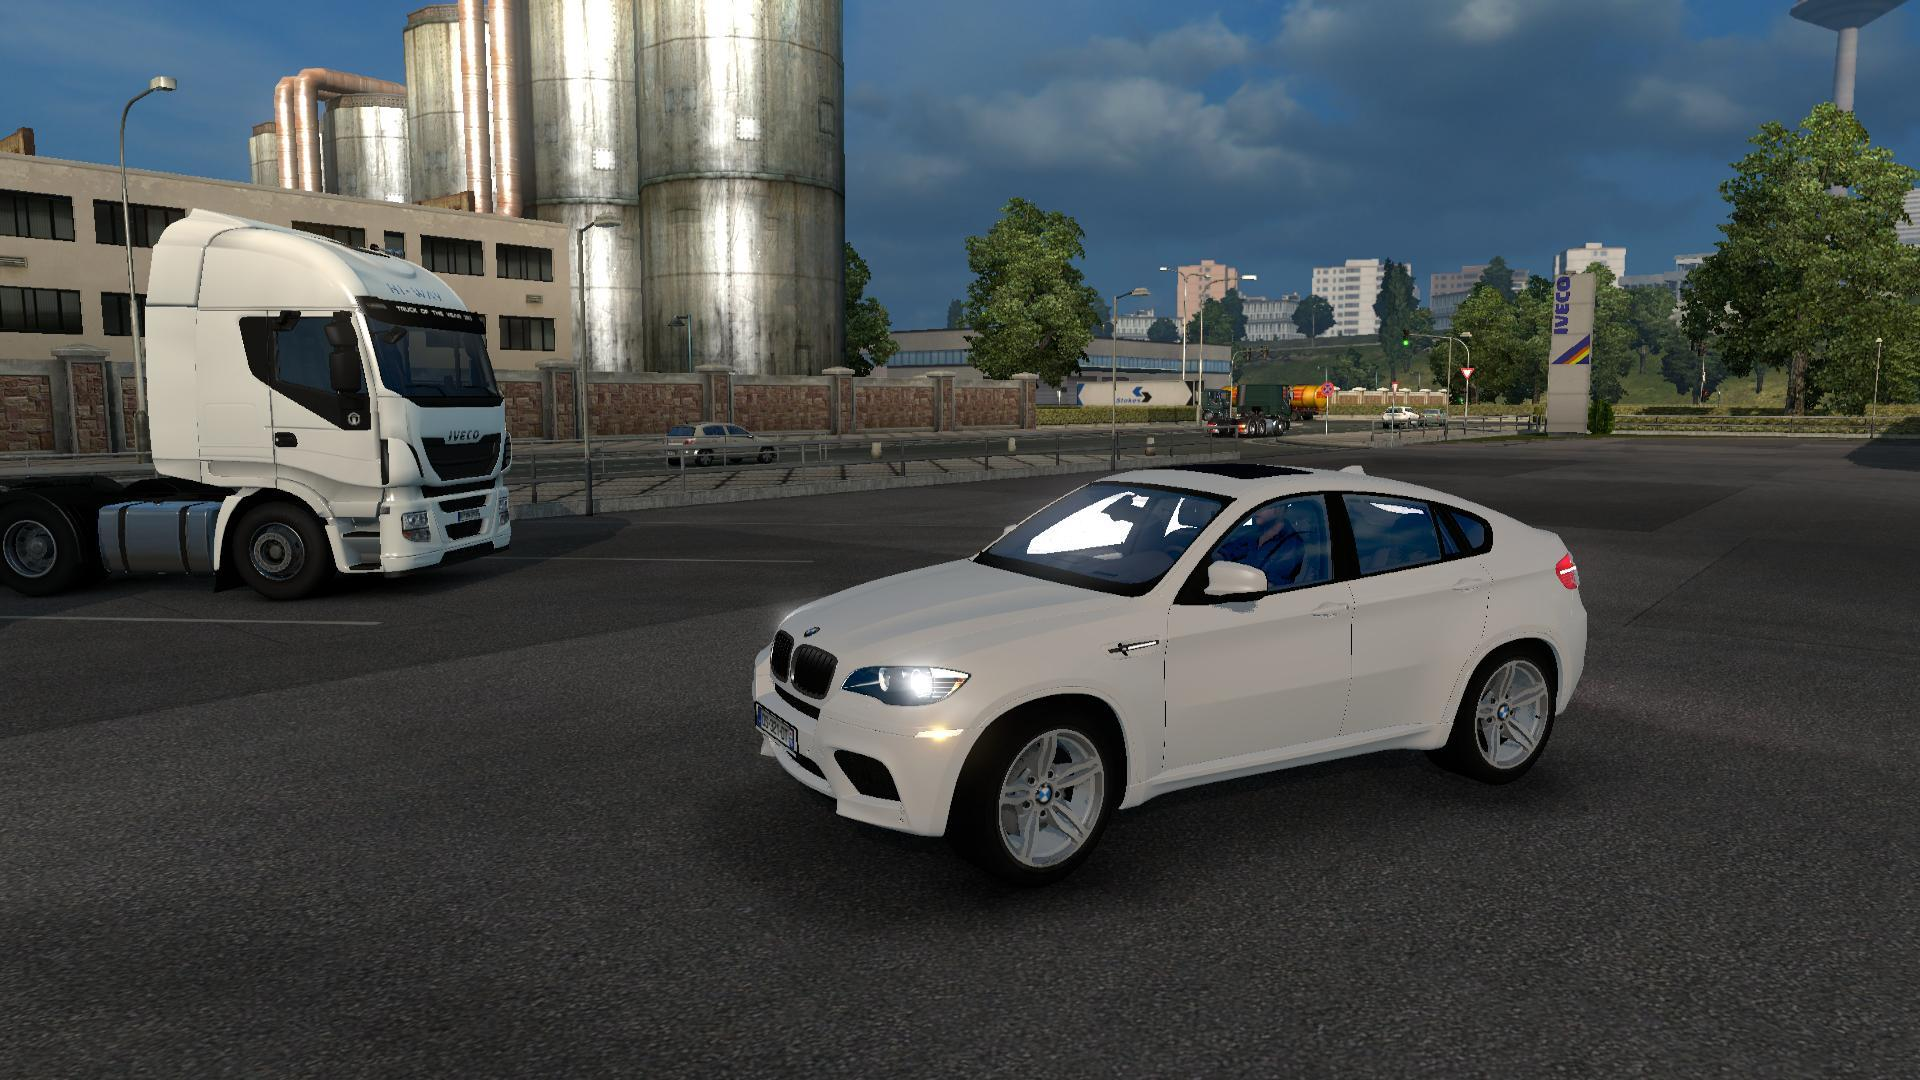 bmw-x6-v3-2-furkansevke-1-19-x-fixed_1.jpg